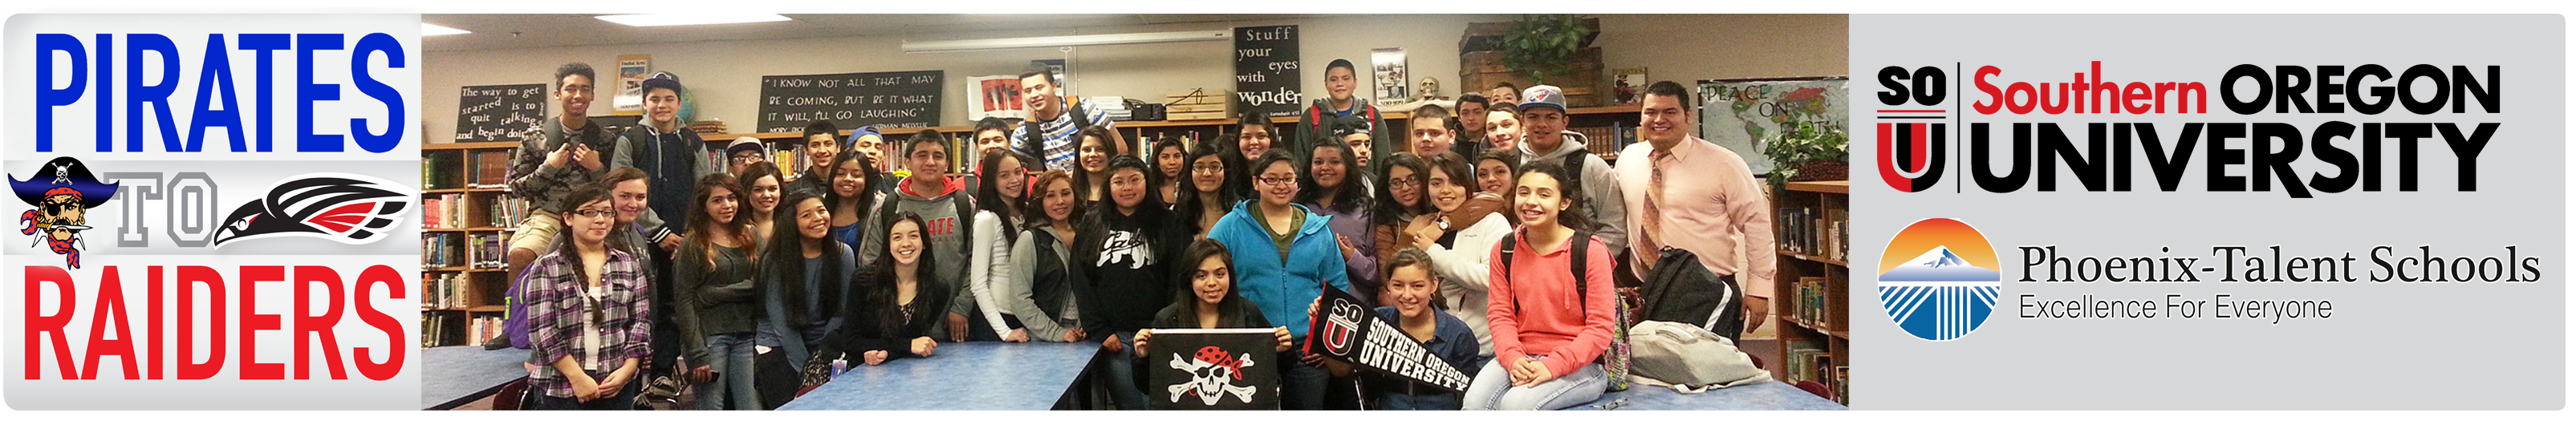 Pirates to Raiders Students with Jon Chavez Baez